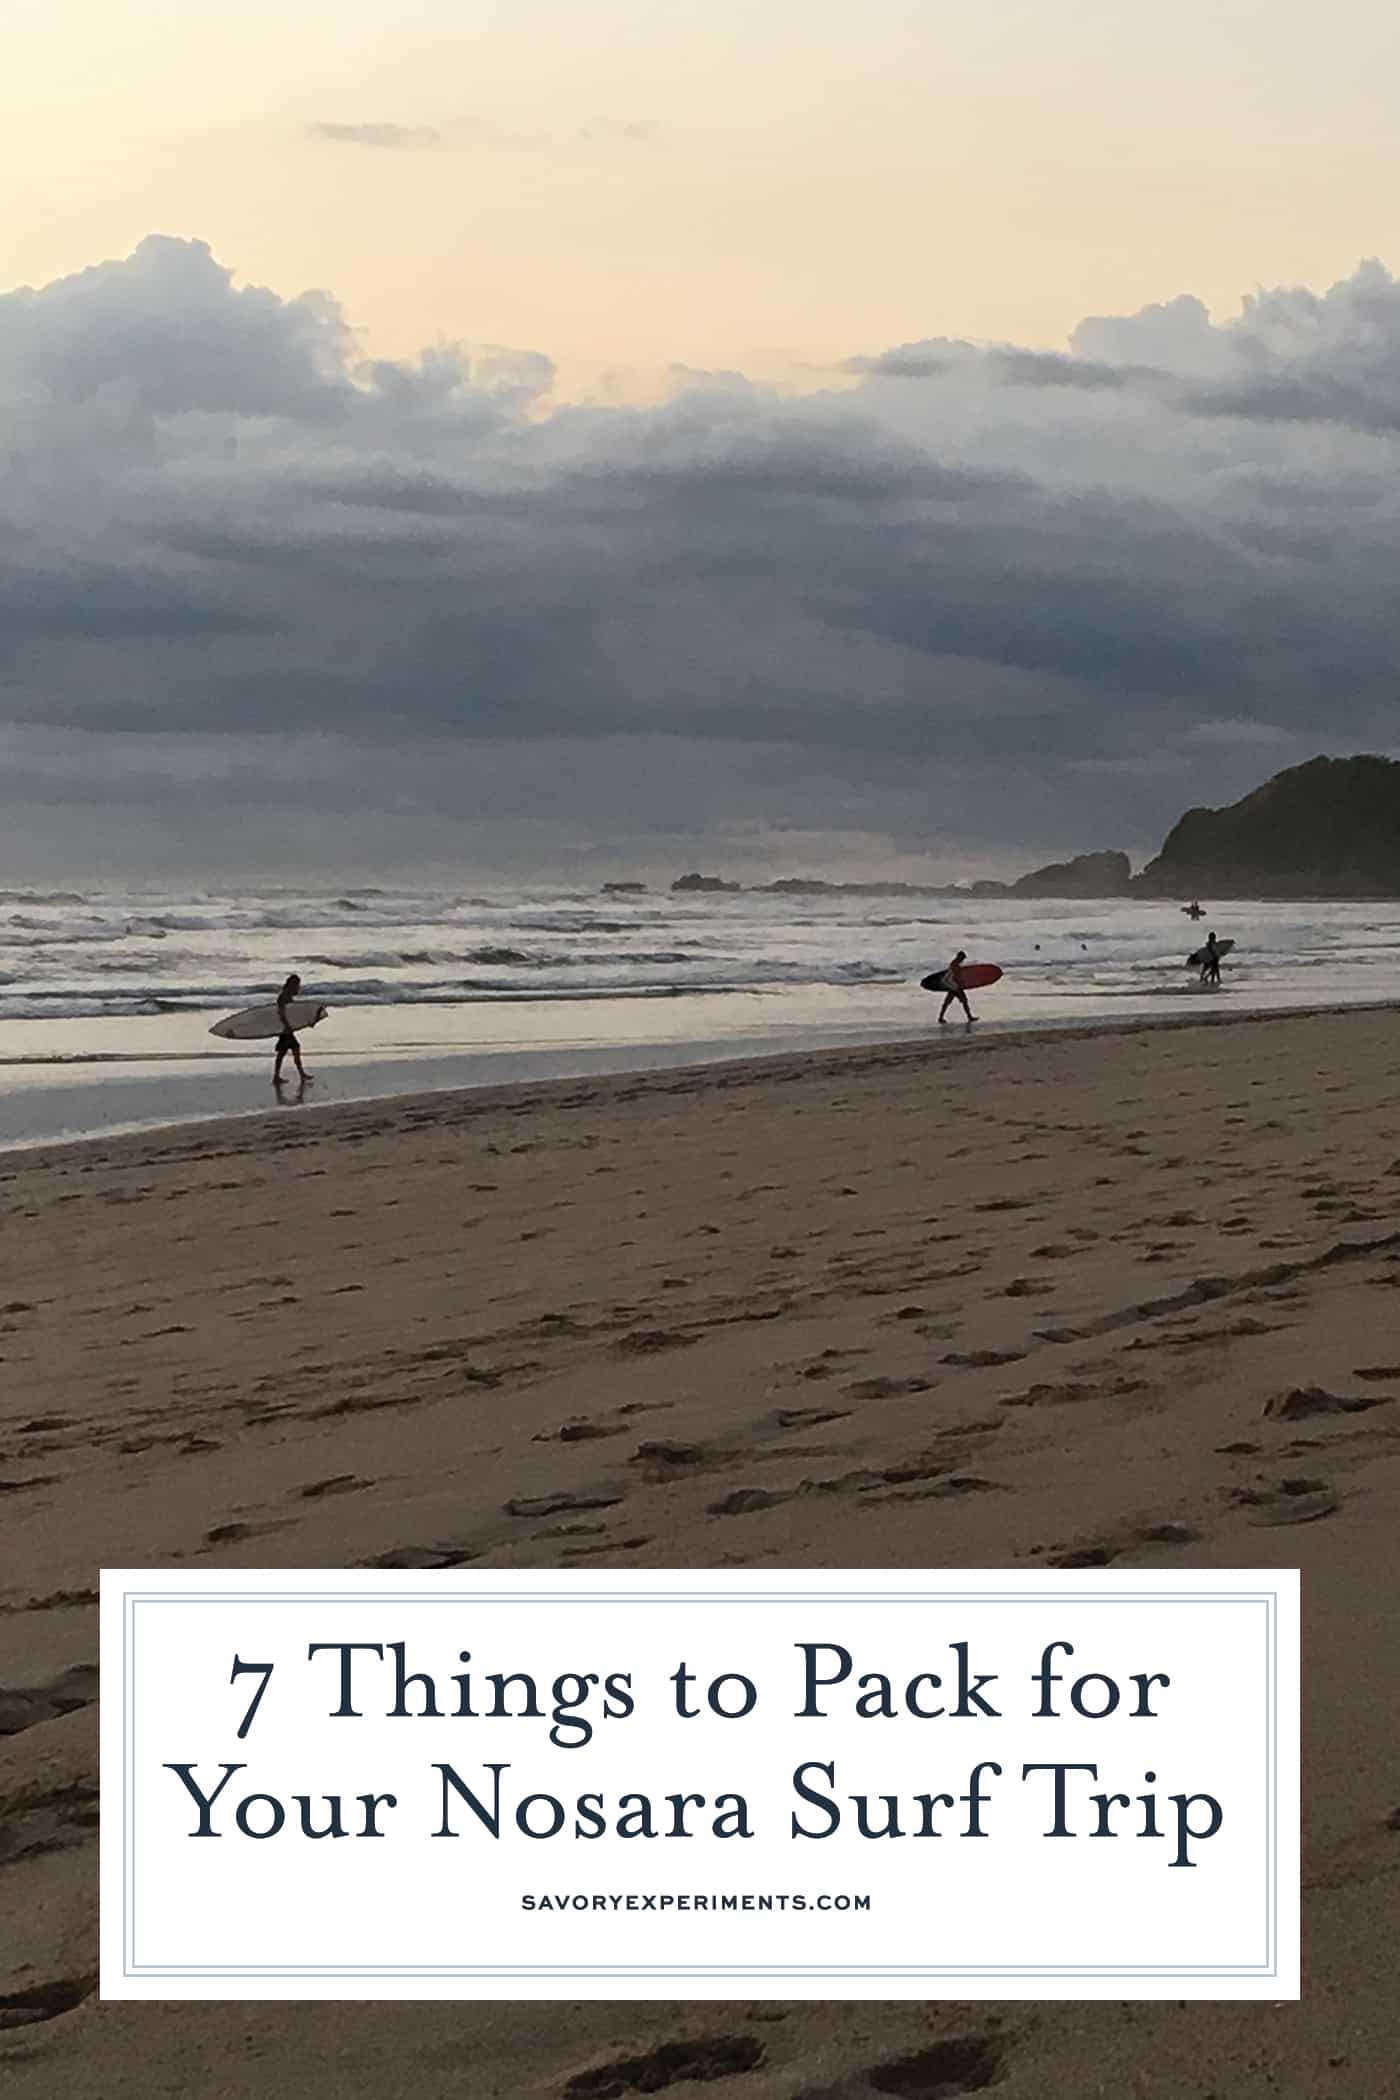 7 Things to Pack for your surf trip to Nosata, Costa Rica to be well prepared and ready for the trip of a lifetime! #surfing #nosara #costarica www.savoryexperiments.com